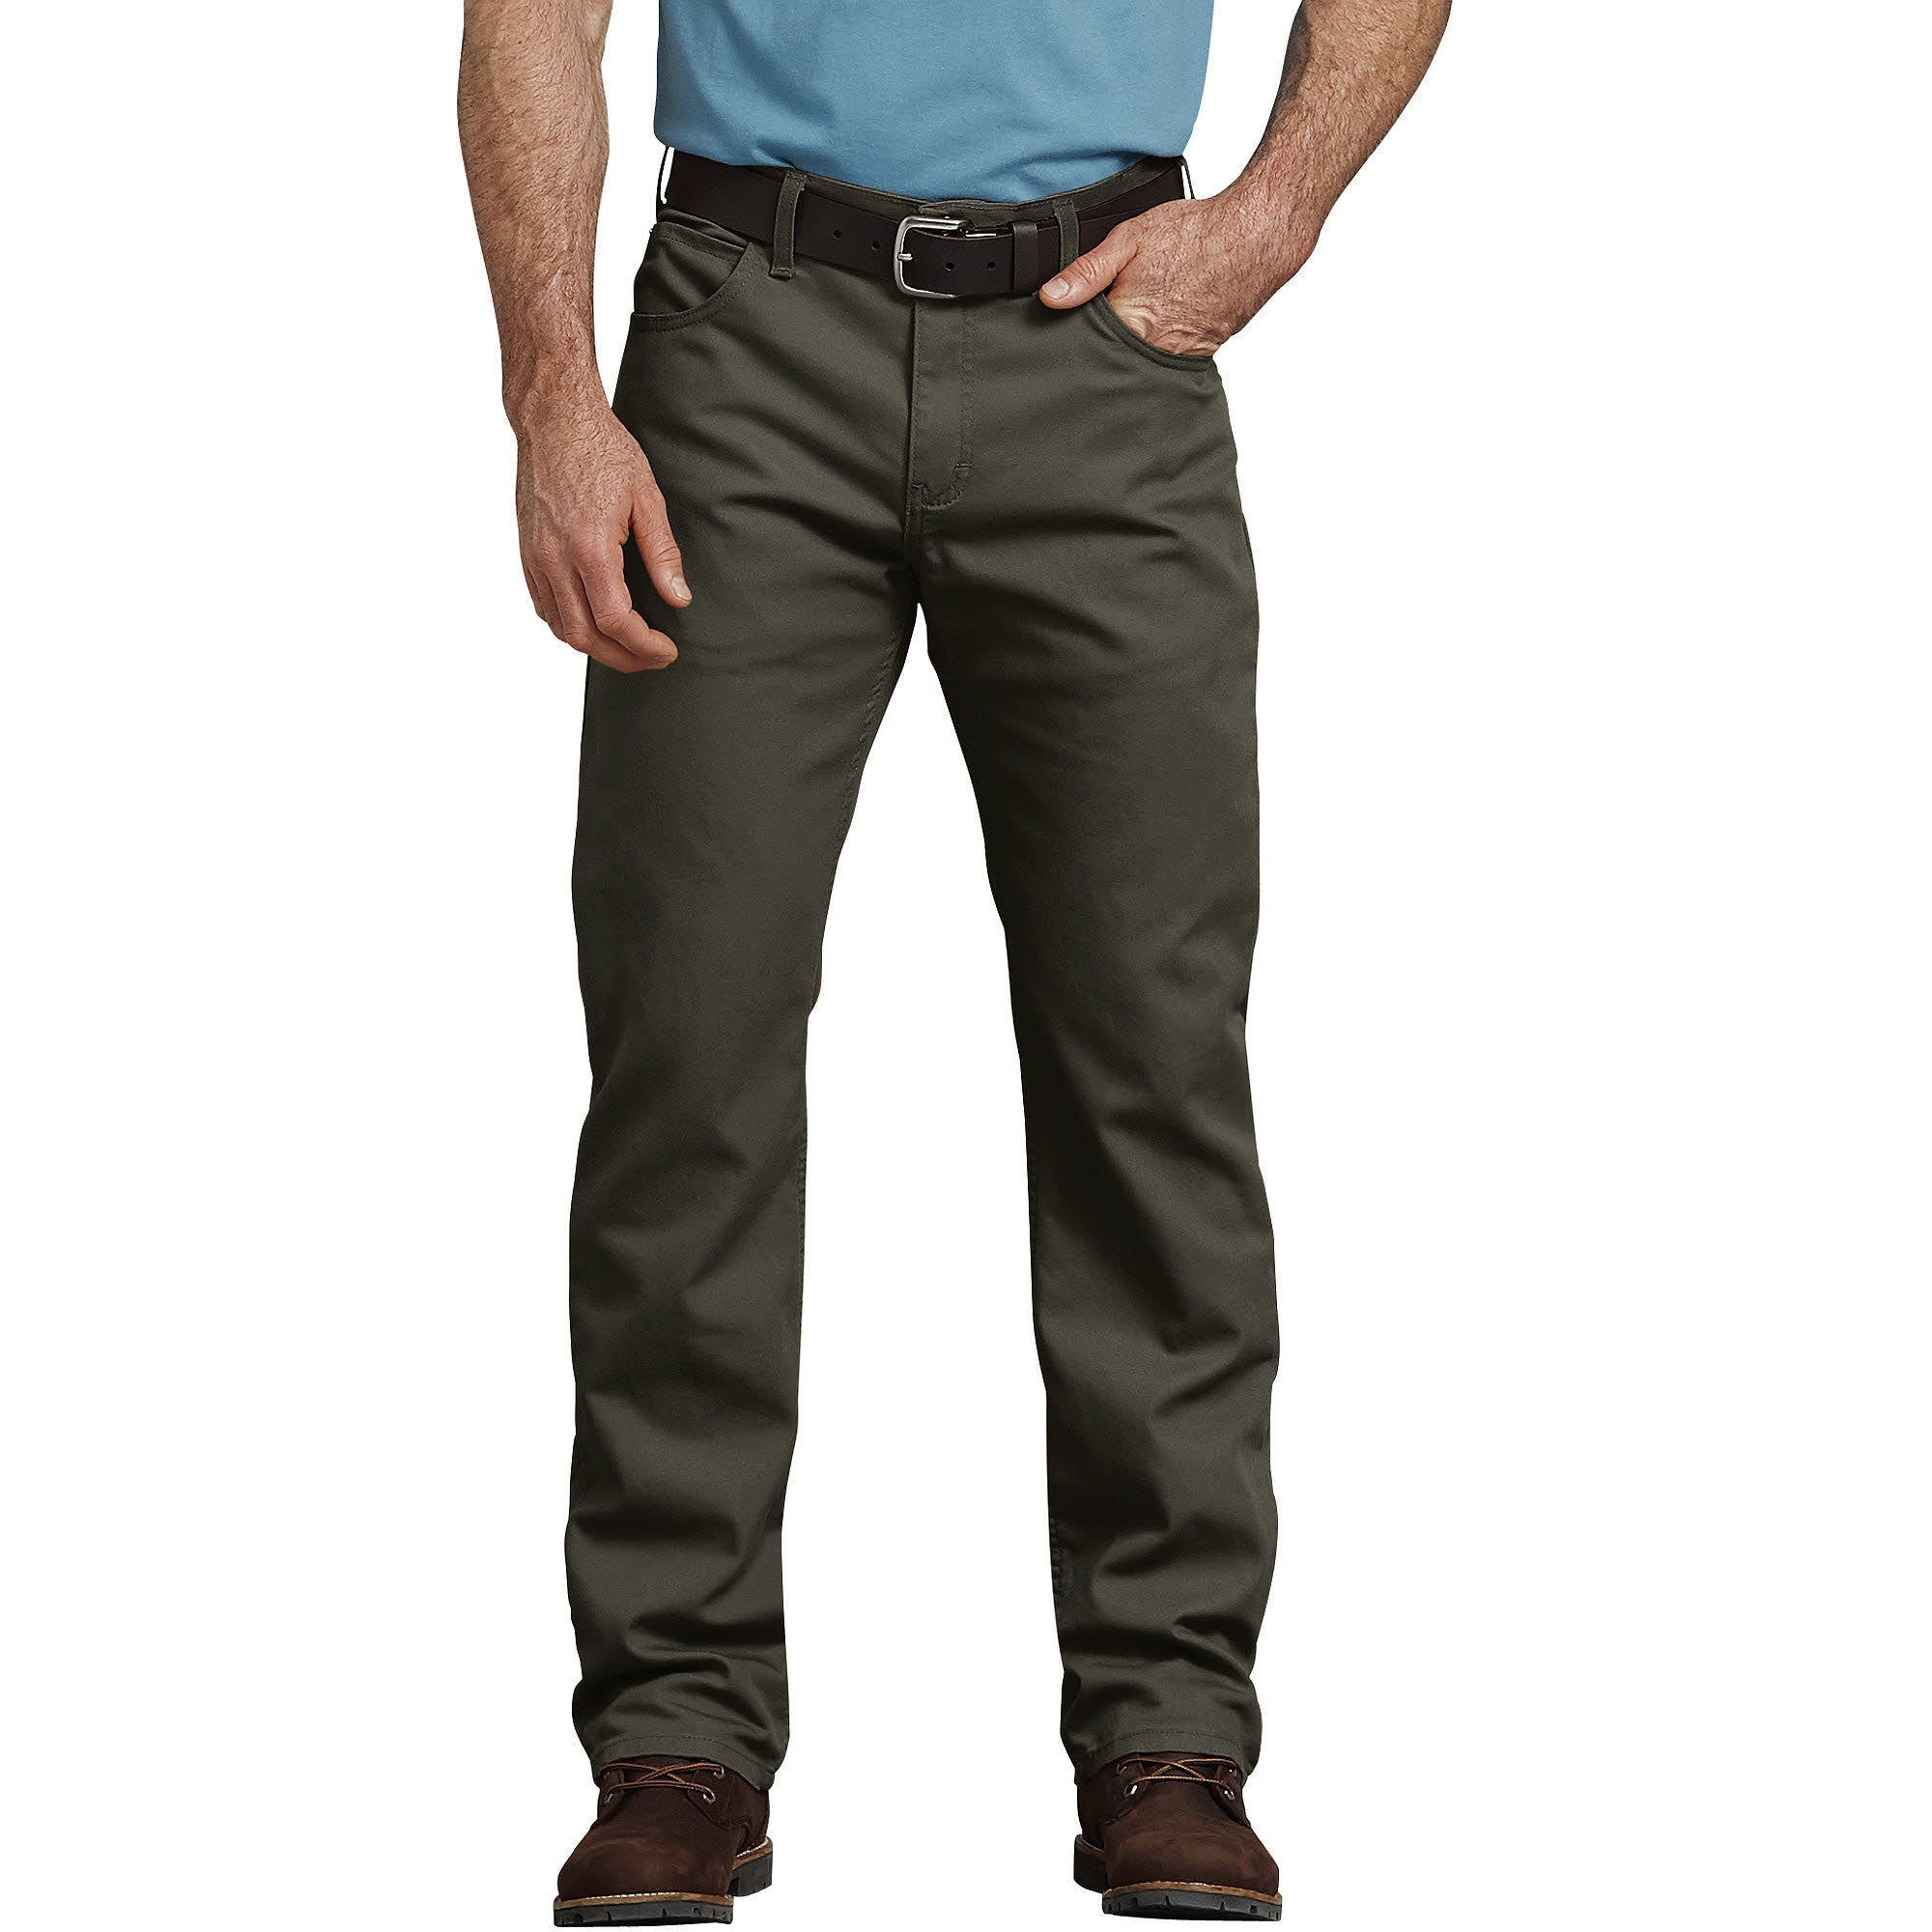 'Dickies' Tough Max Regular Fit Duck 5-Pocket Pant - Stonewashed Moss Green